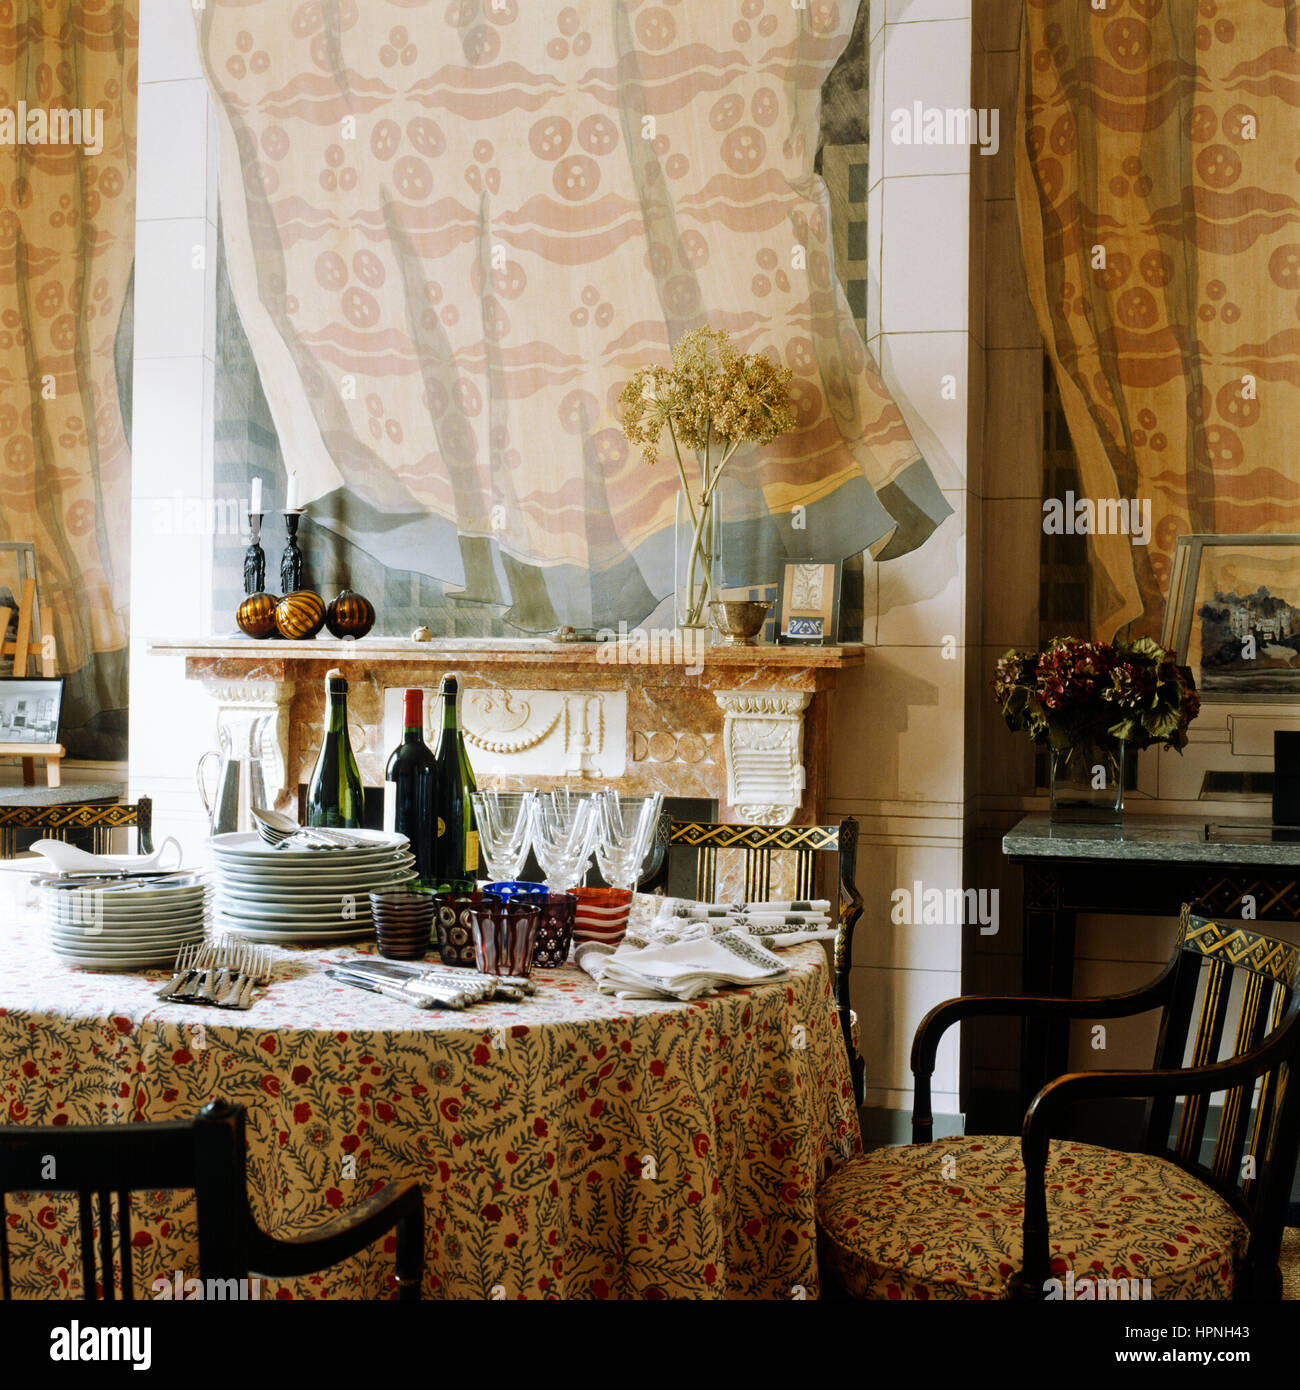 A dining room with a fireplace. - Stock Image